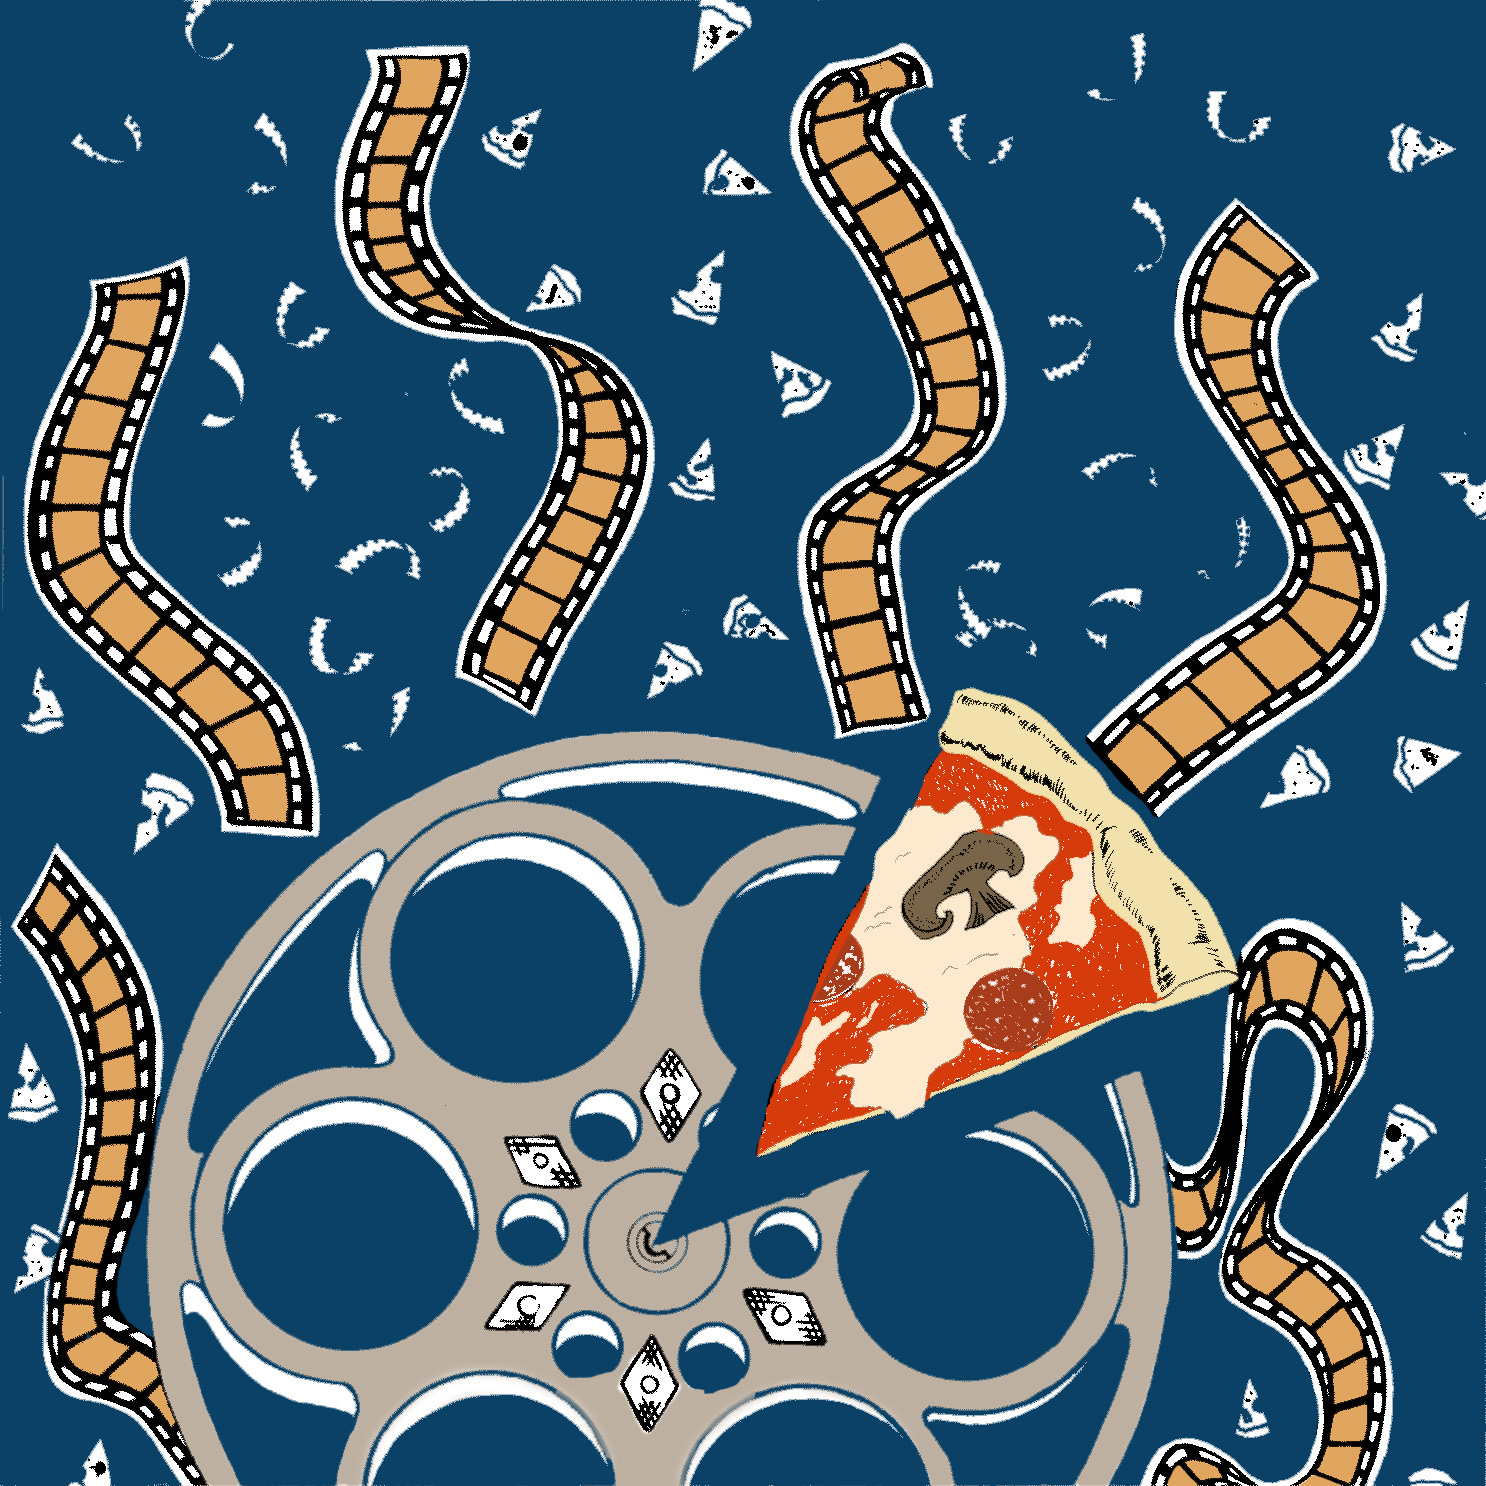 Reel Pizza logo